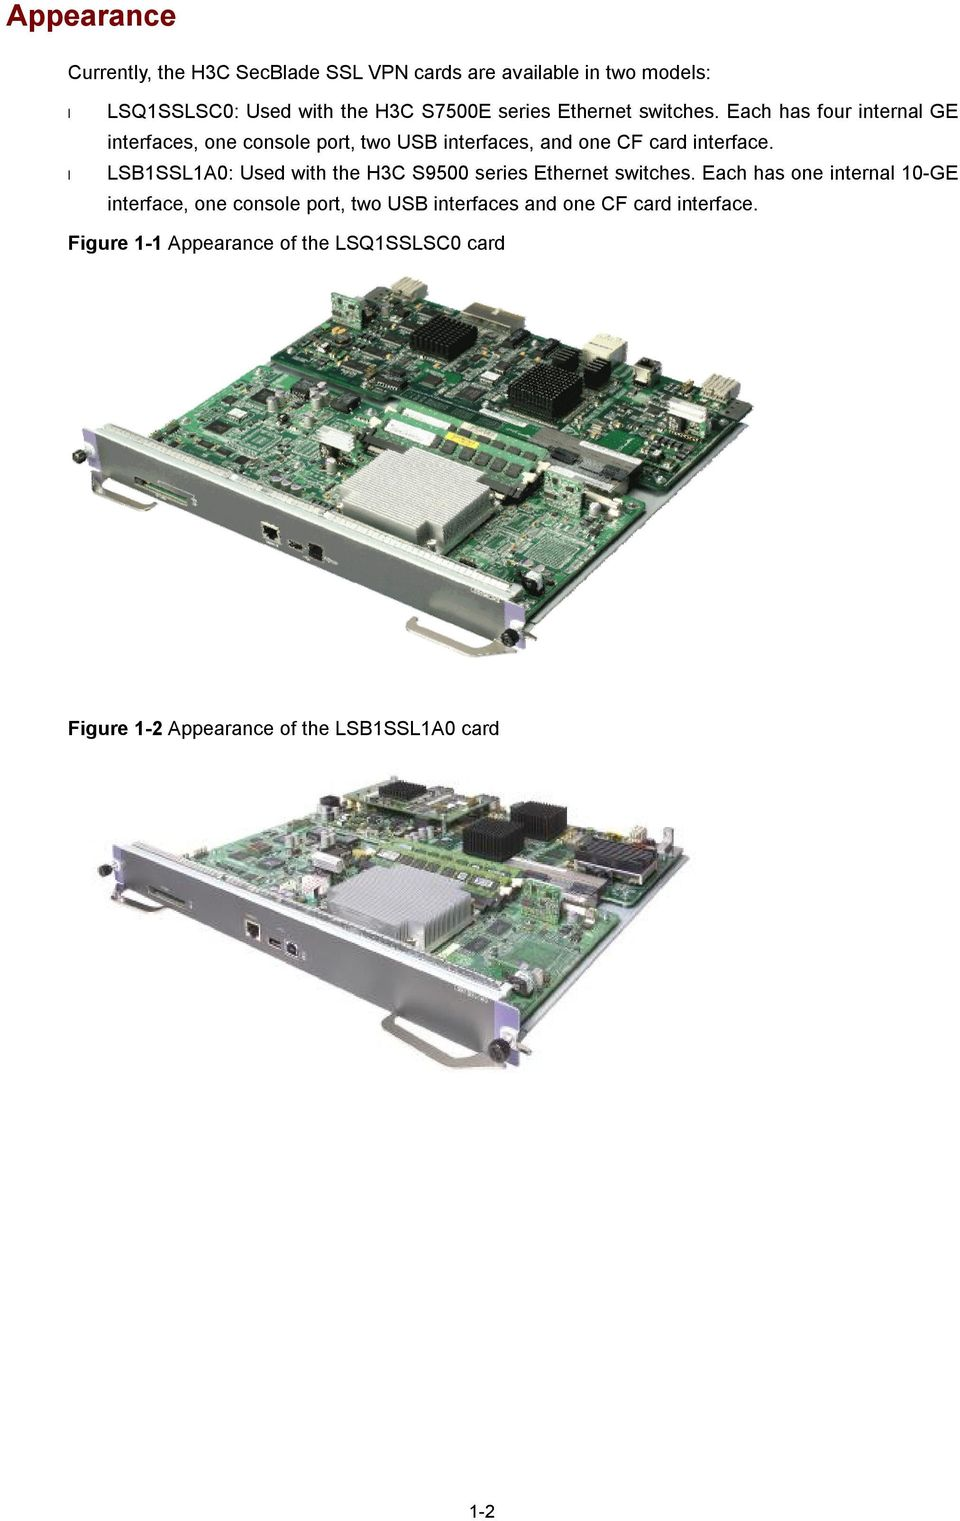 LSB1SSL1A0: Used with the H3C S9500 series Ethernet switches.